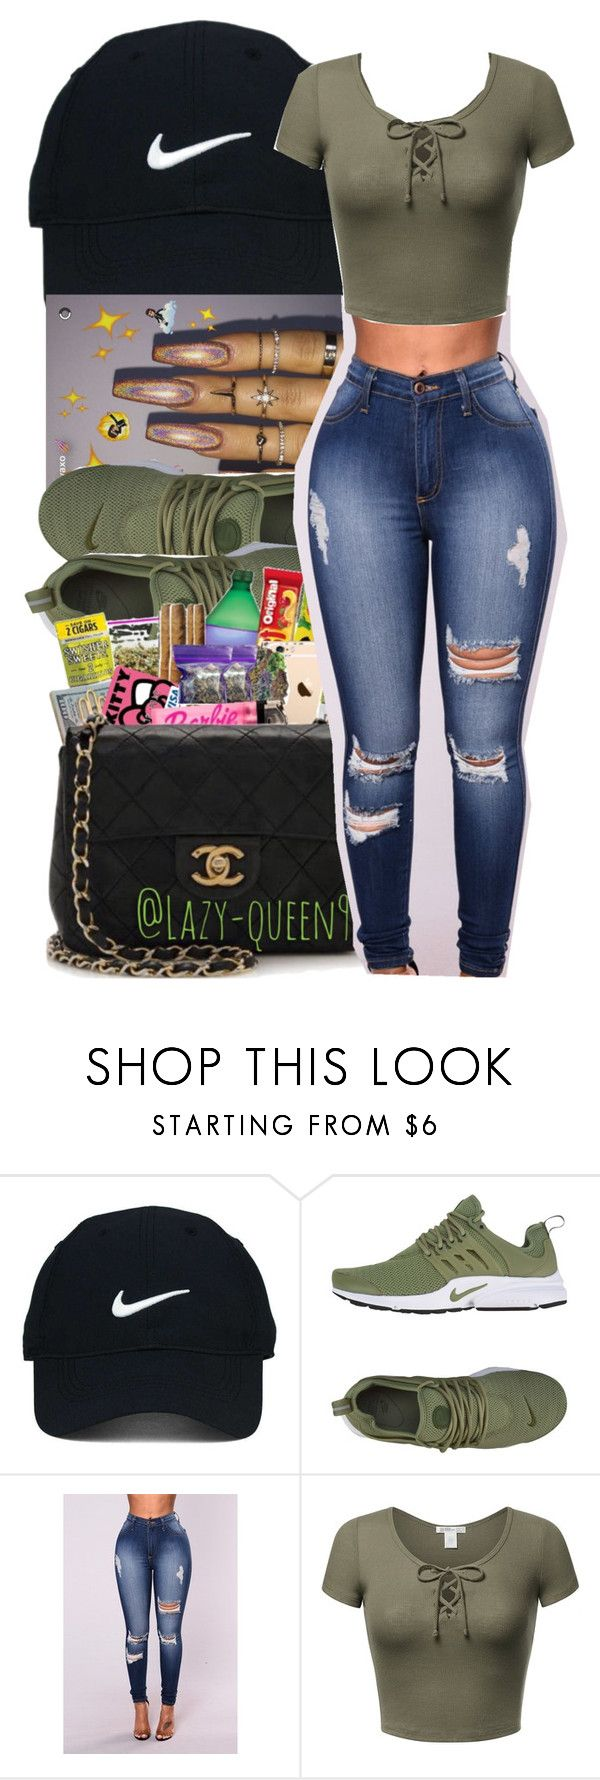 """‍♀️"" by mafiia-queen ❤ liked on Polyvore featuring beauty, Nike Golf and NIKE"